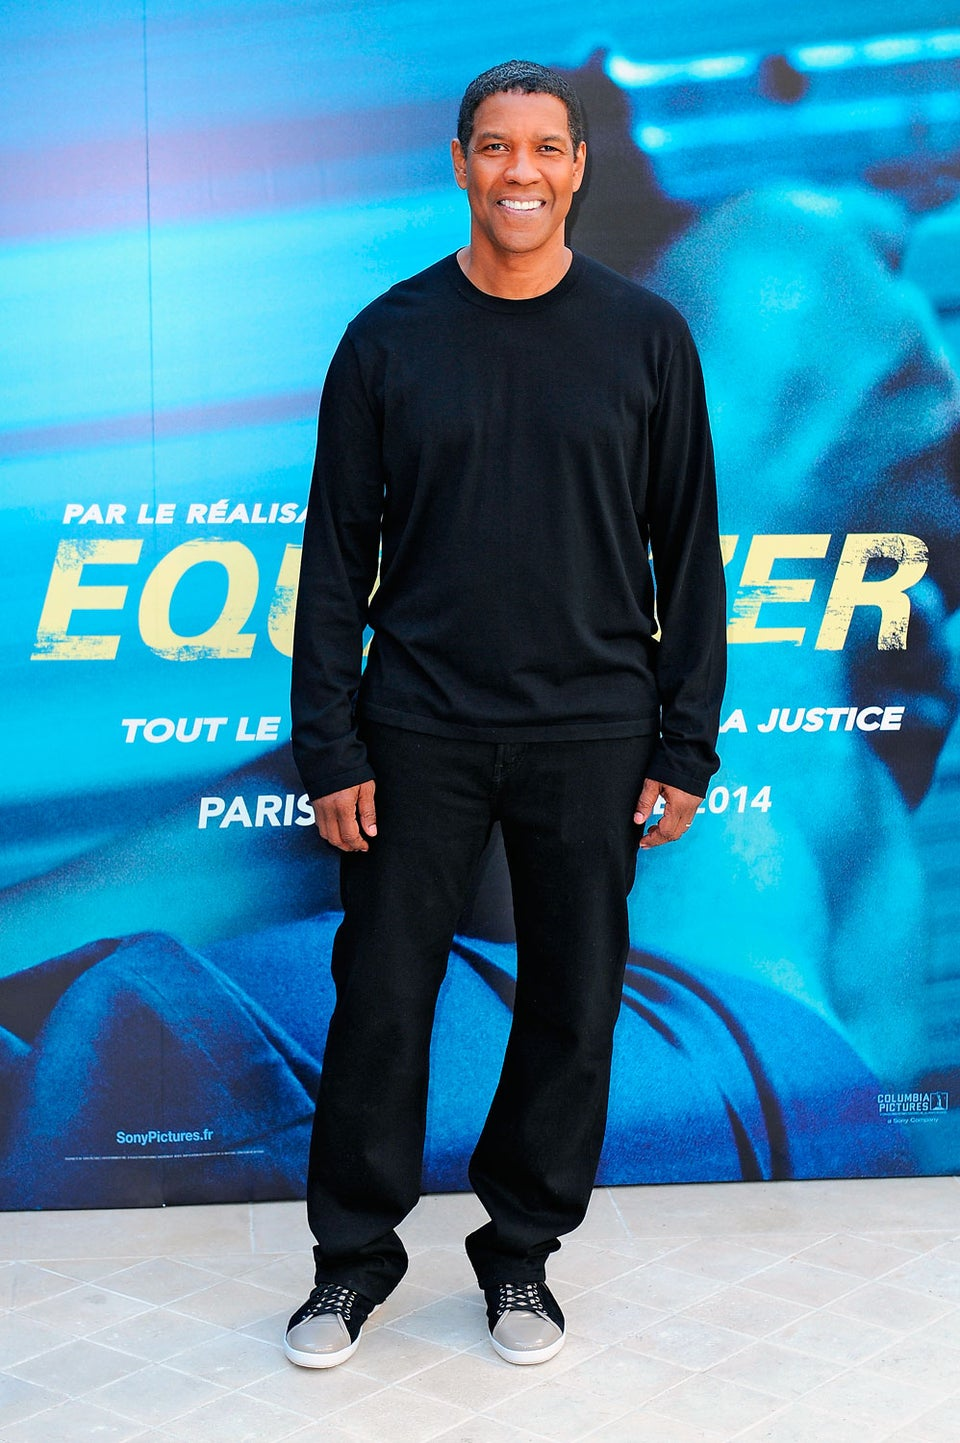 Coffee Talk: Denzel Washington's 'Equalizer' Earns $35 Million at the Box Office